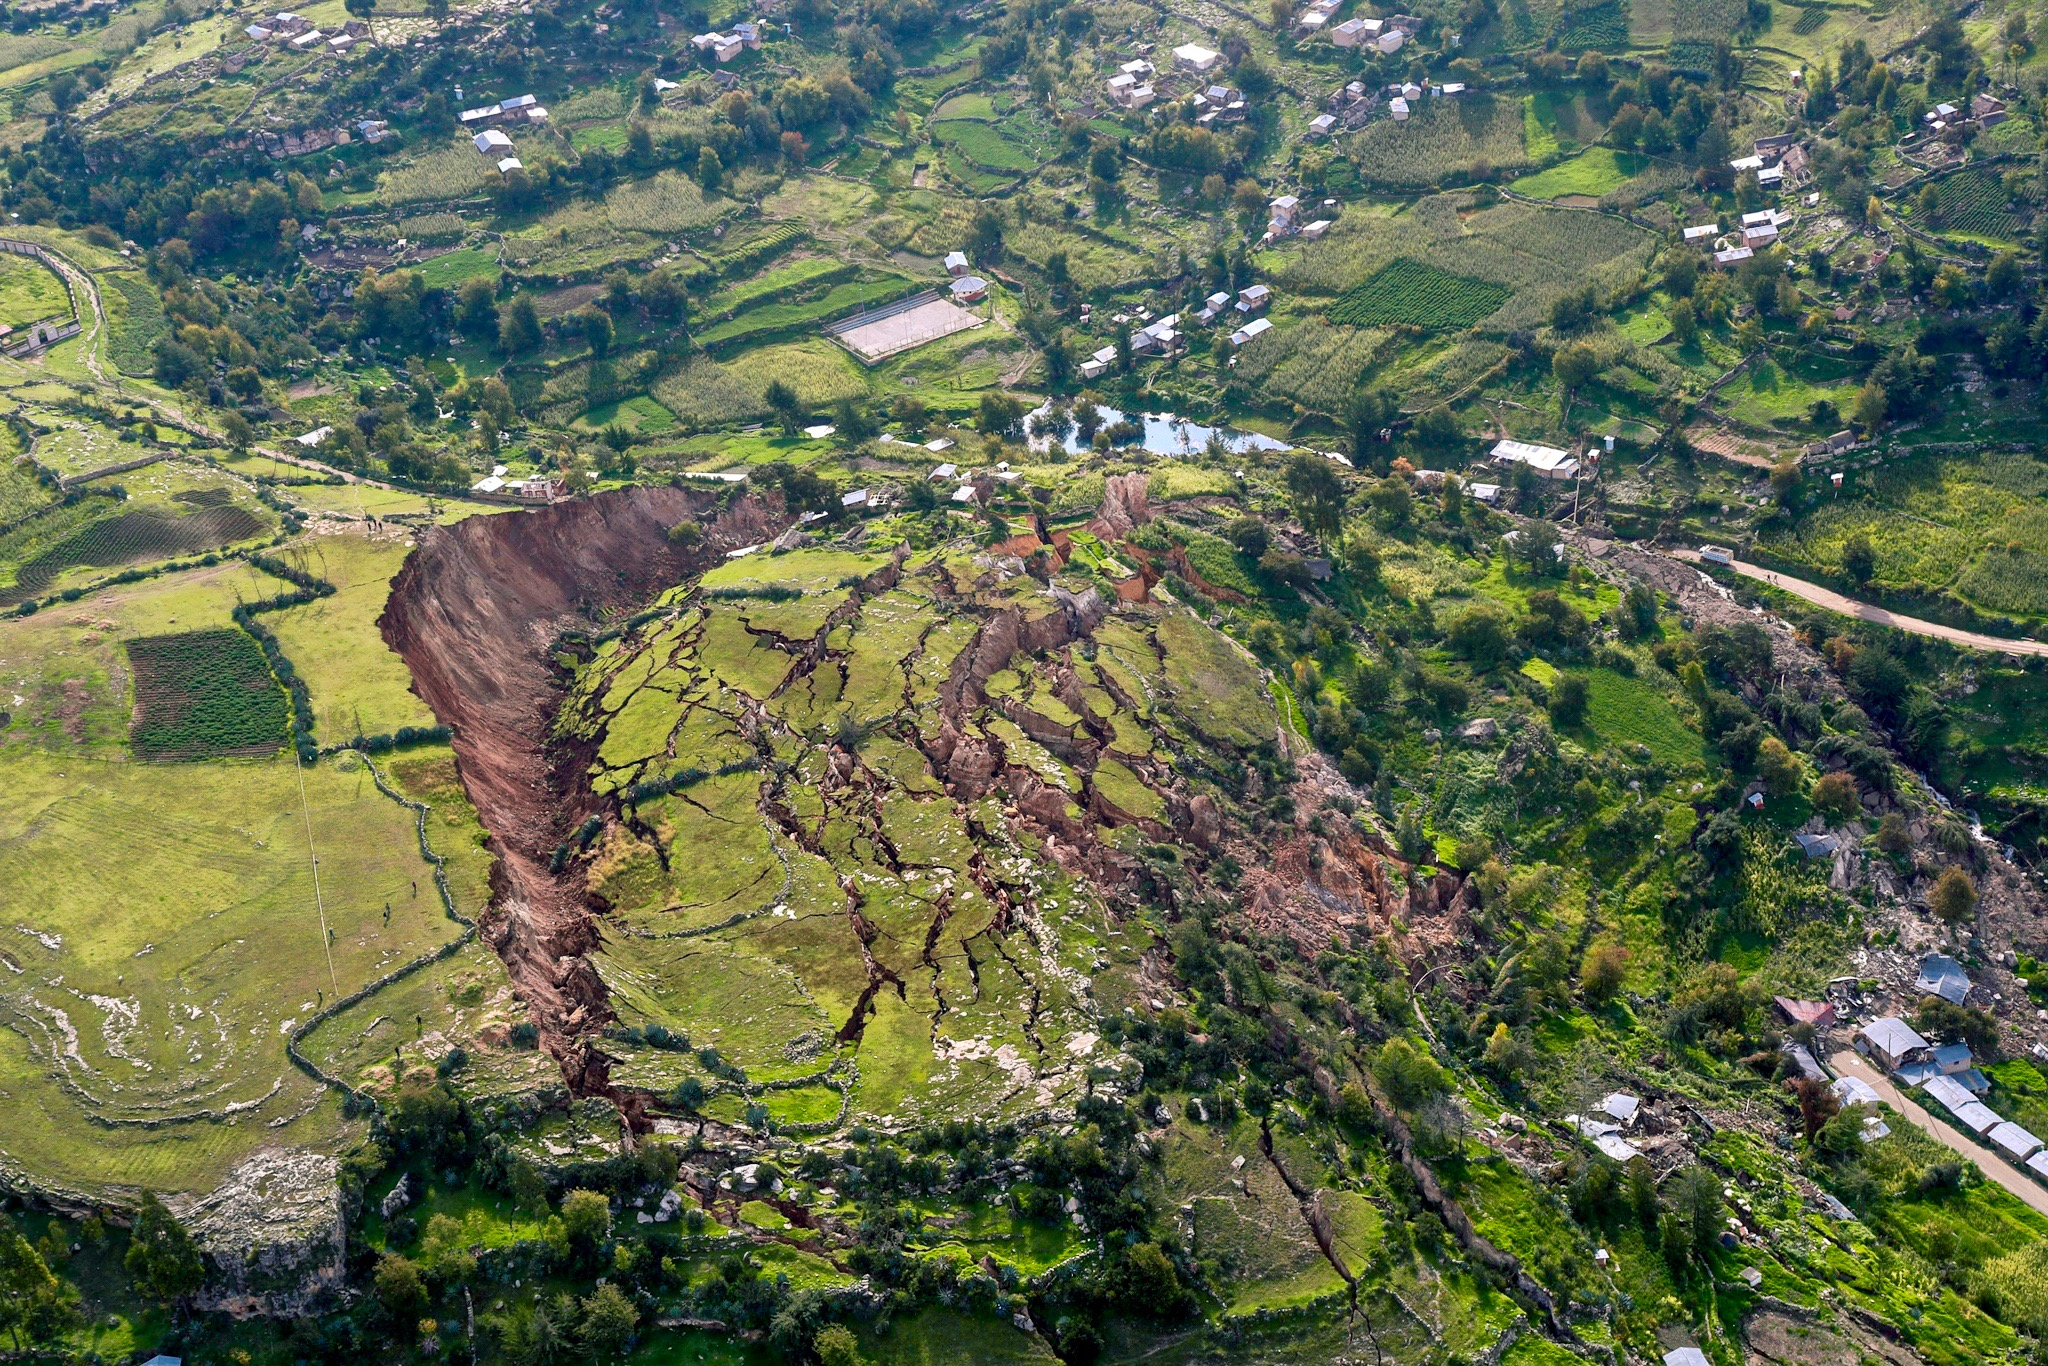 Landslides like this one in Cusco, Peru are causing more damage and becoming more frequent in part due to climate change. (credit: Courtesy of Galeria del Ministerio de Defensa del Perú via Wikimedia Commons)